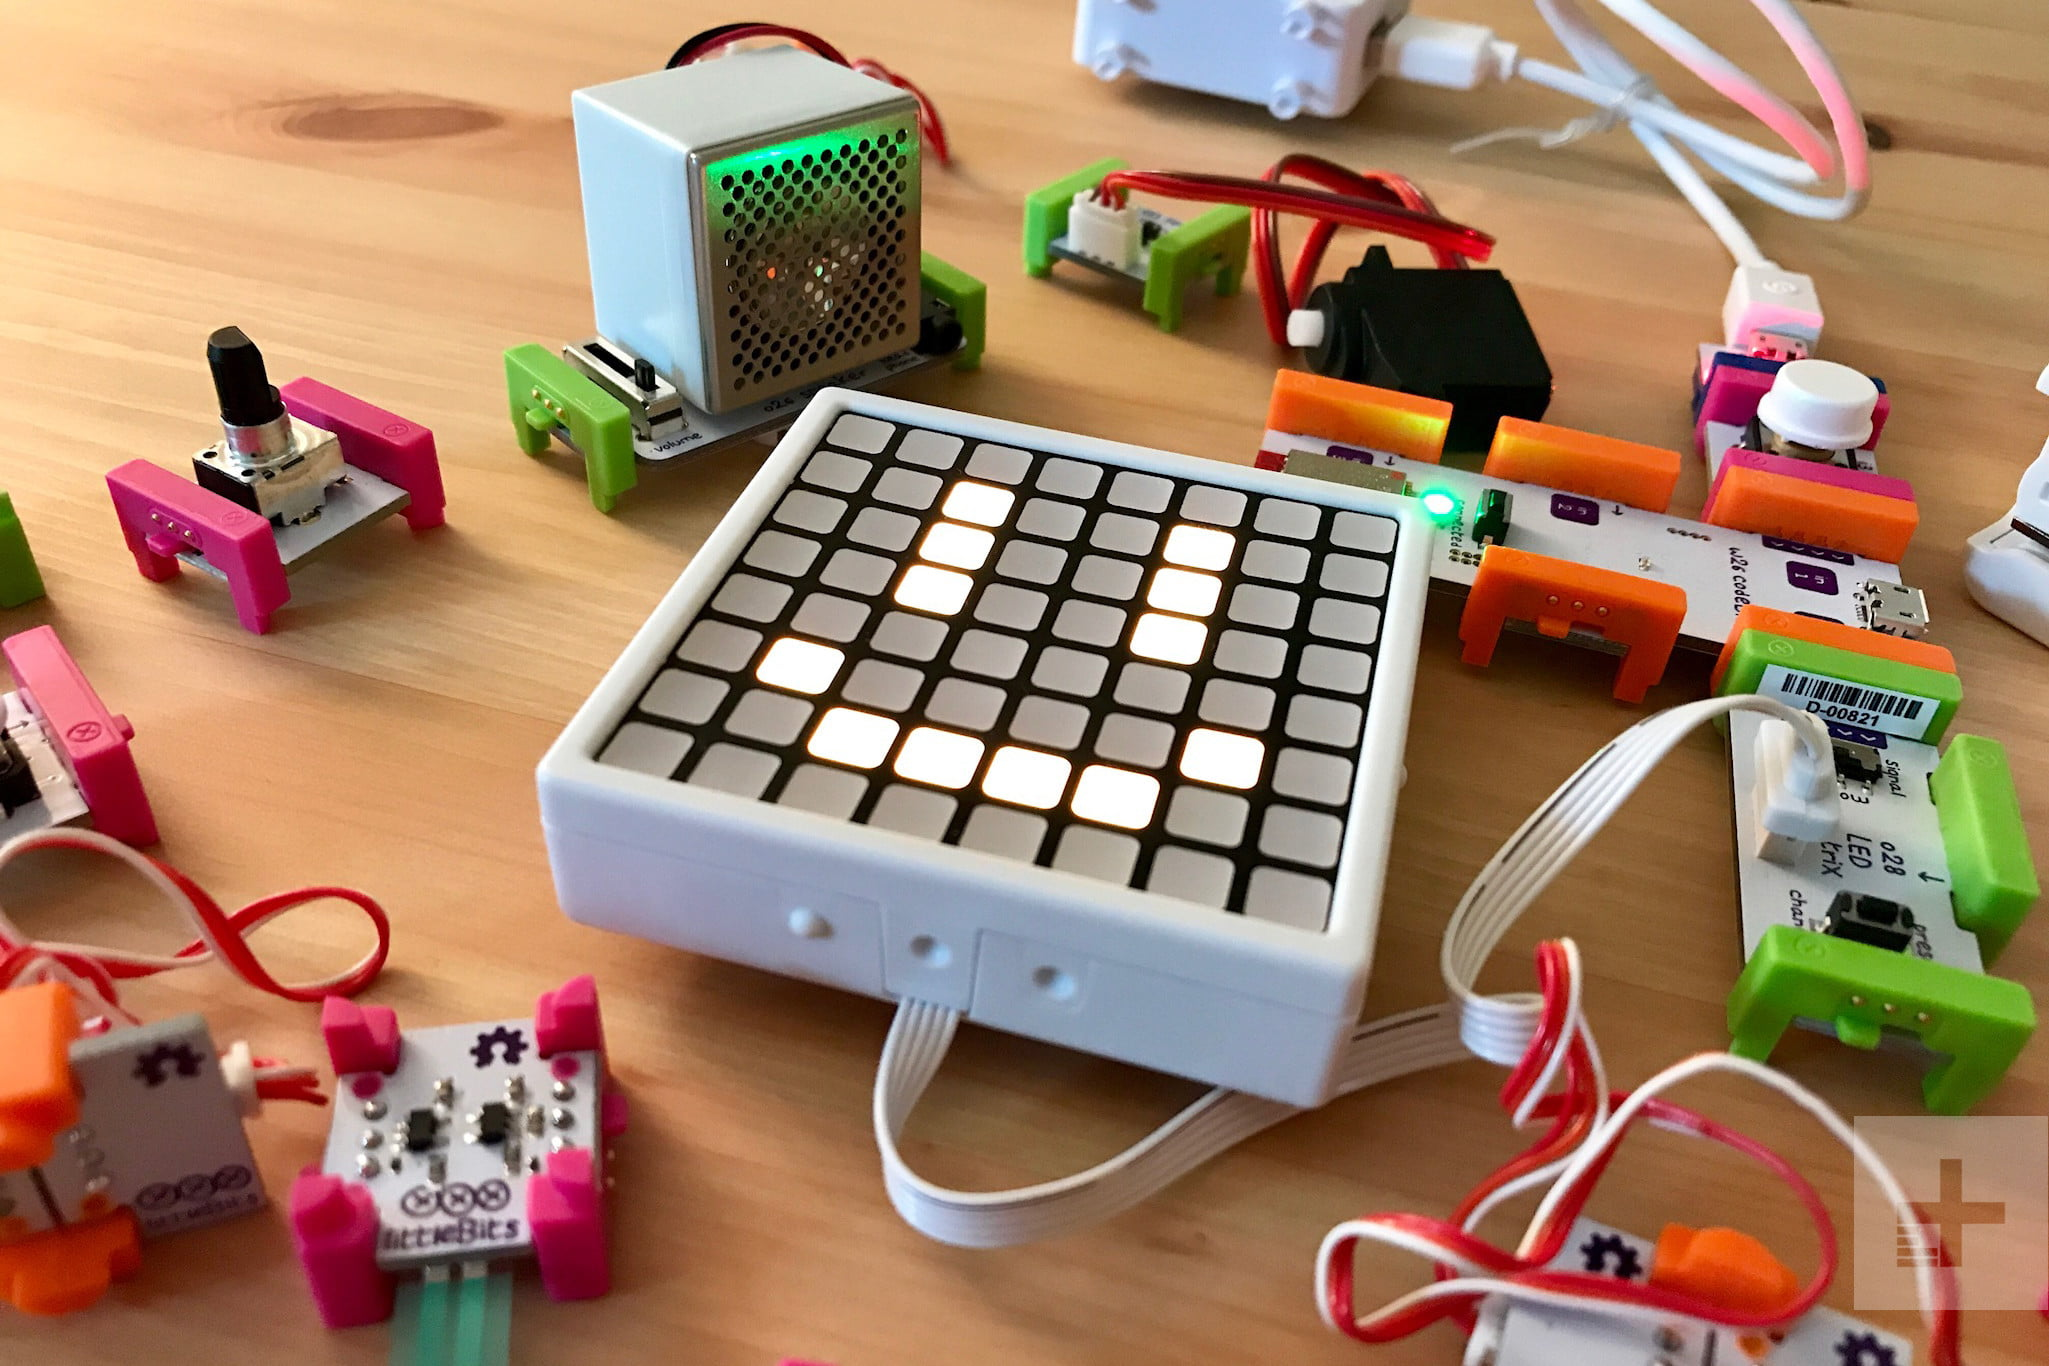 Littlebits Code Kit Is A Simple Fun Way To Introduce Your Child Got Teach Electrical Circuit Game Show Lesson Review 1